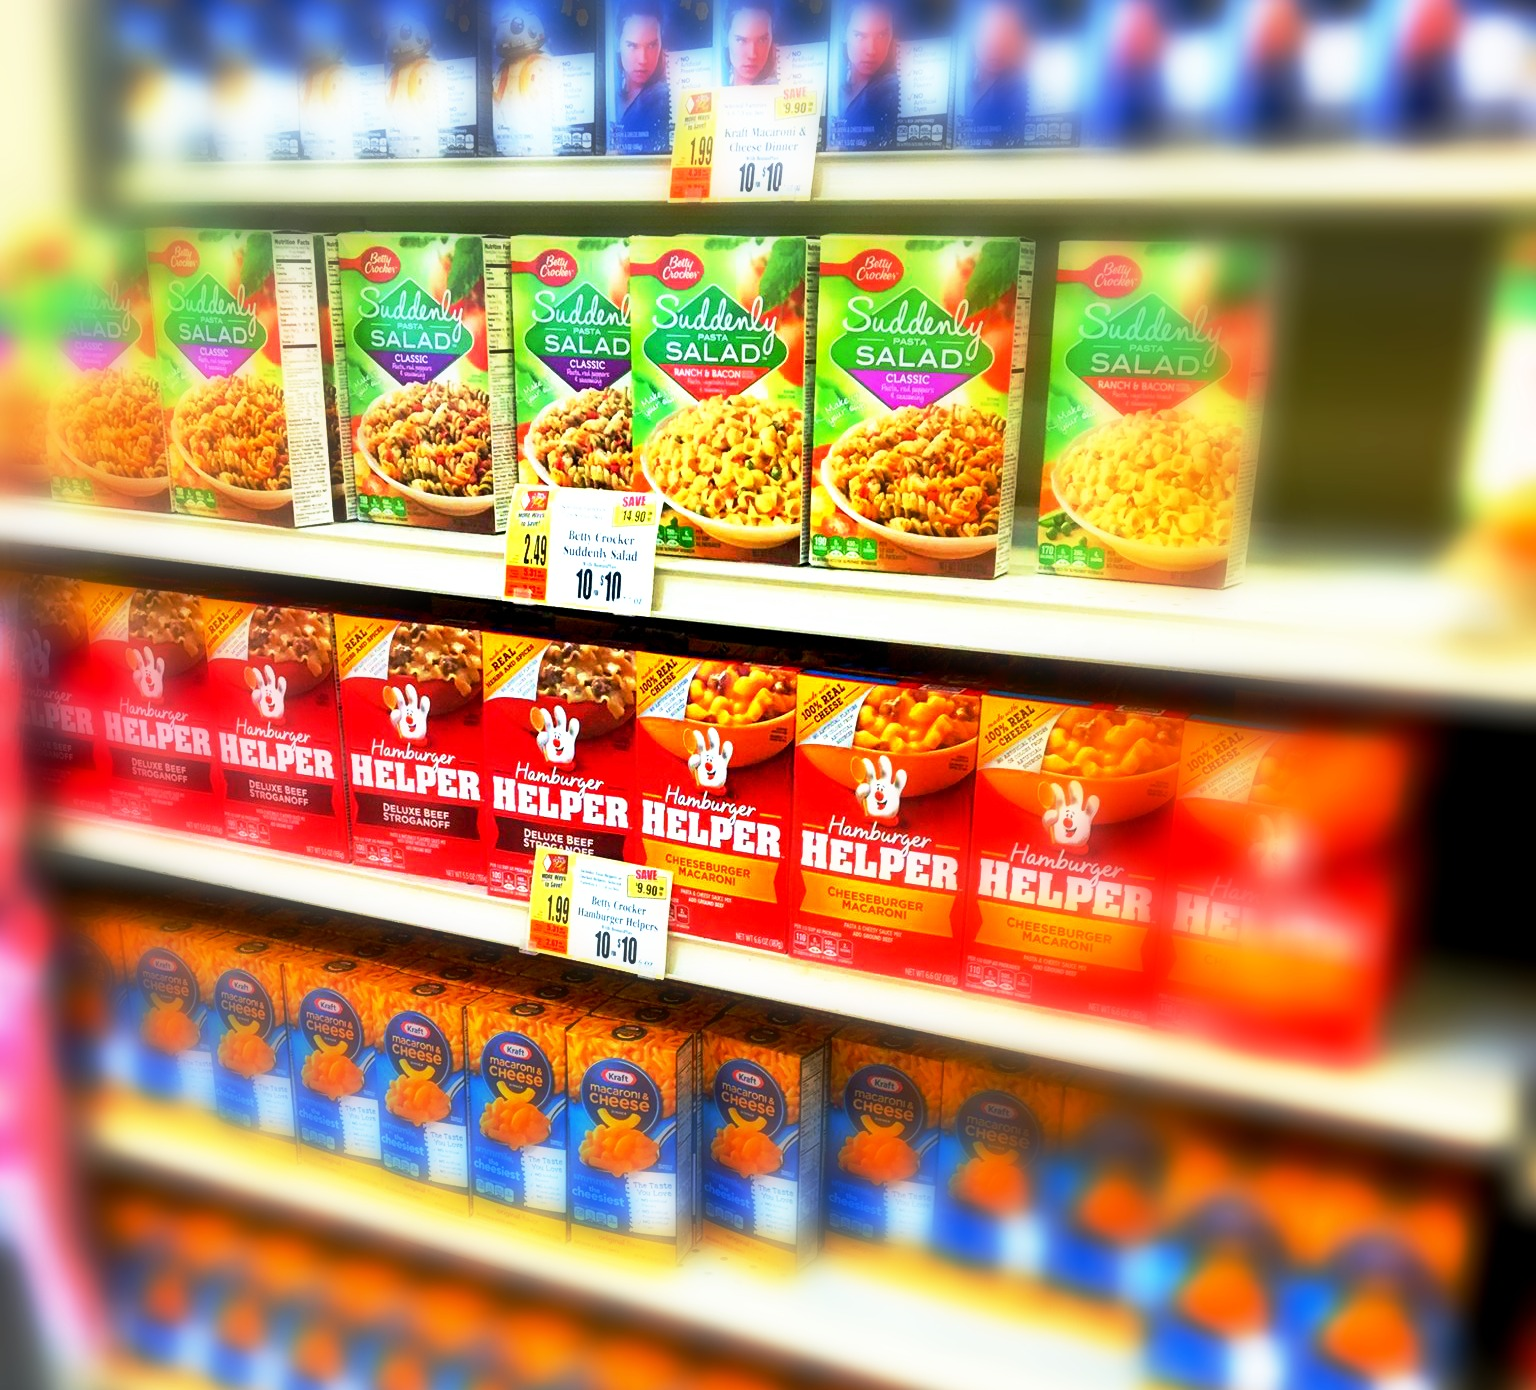 Suddenly Salad and Betty Crocker Helpers only $.75 at Tops~~ends Saturday 6/2!